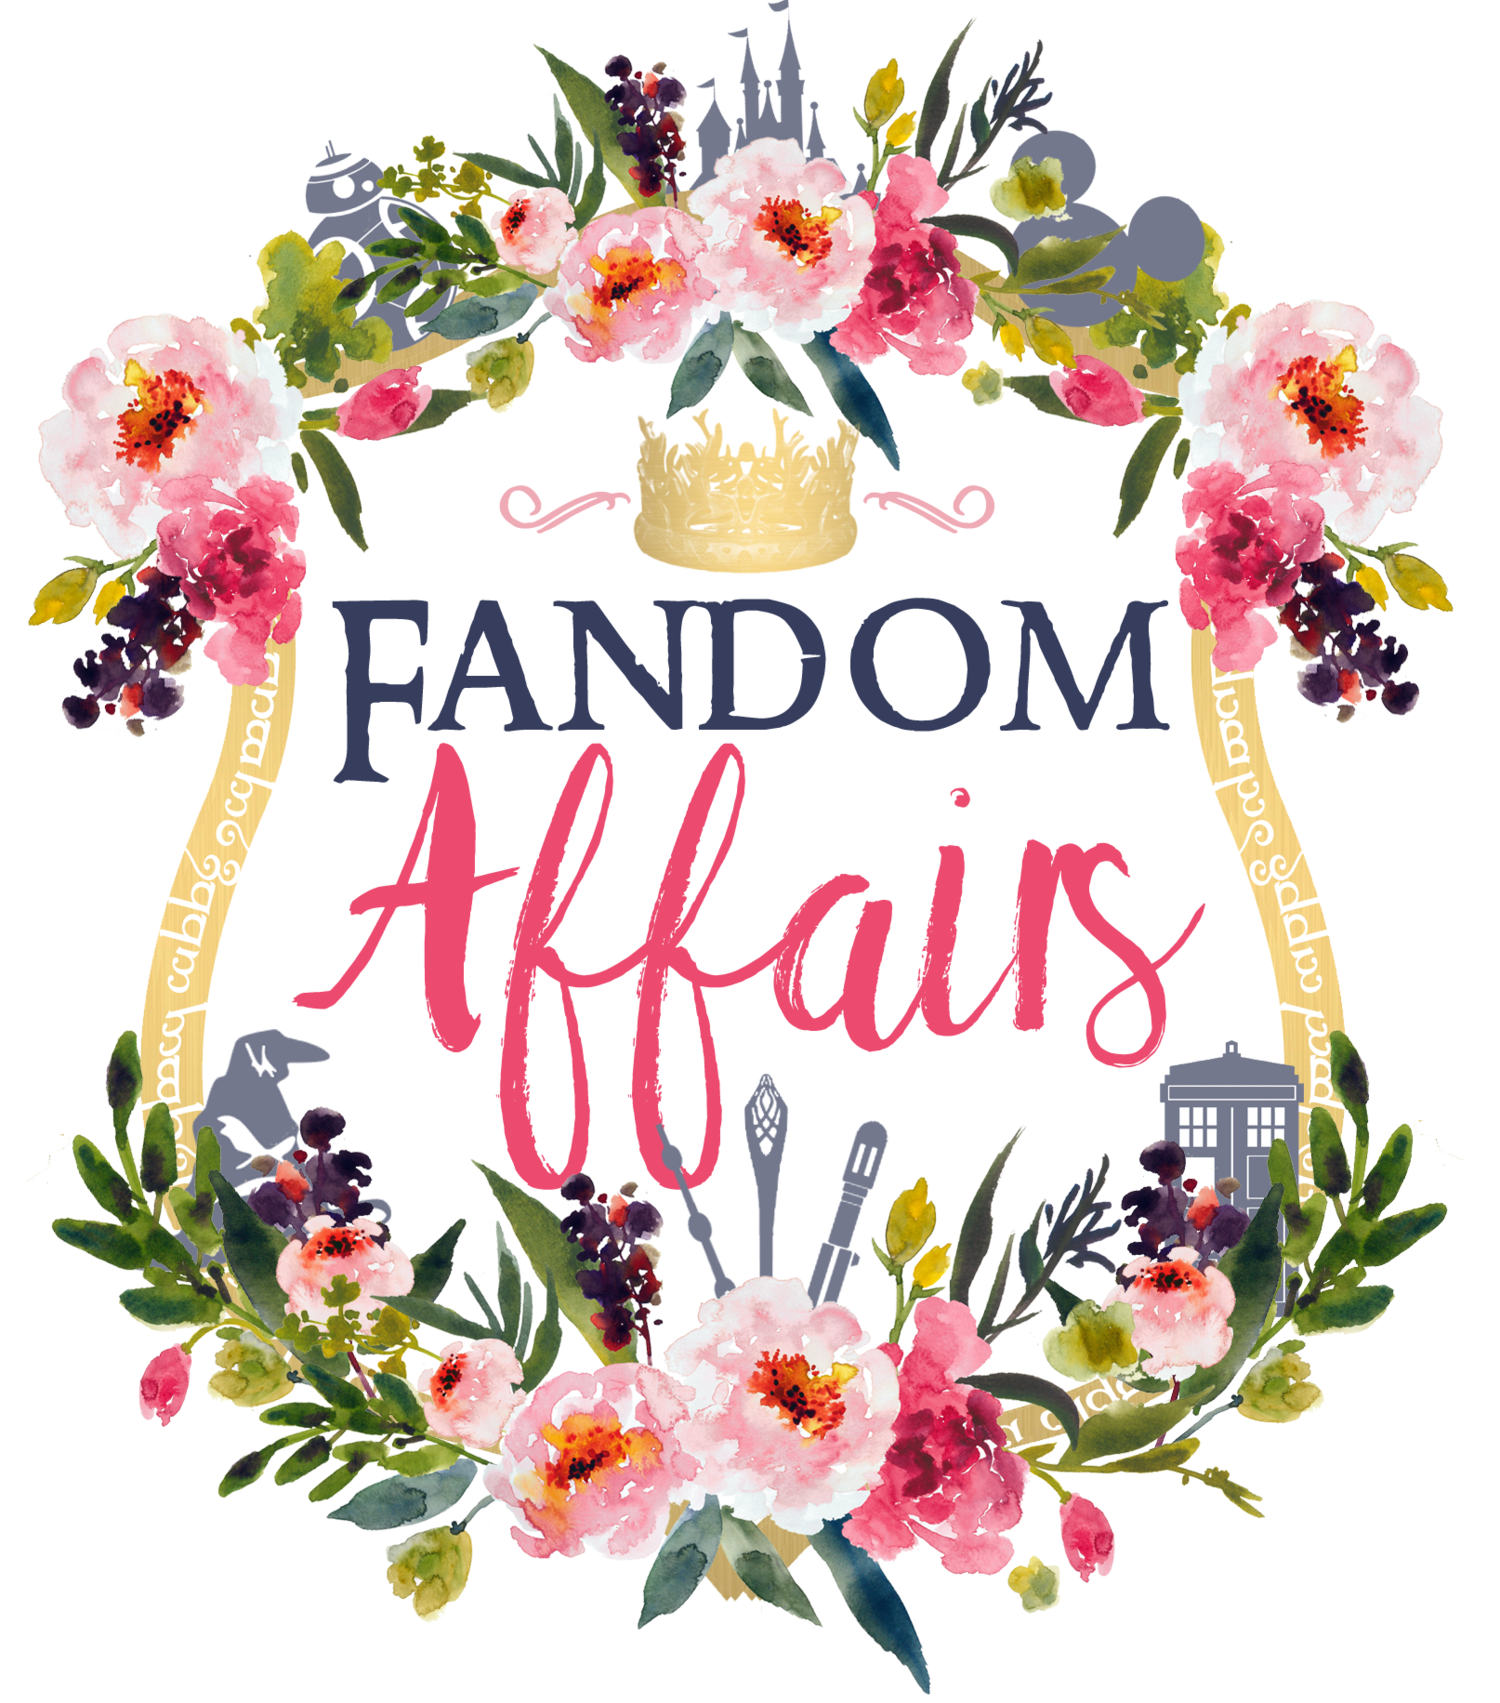 Fandom Affairs